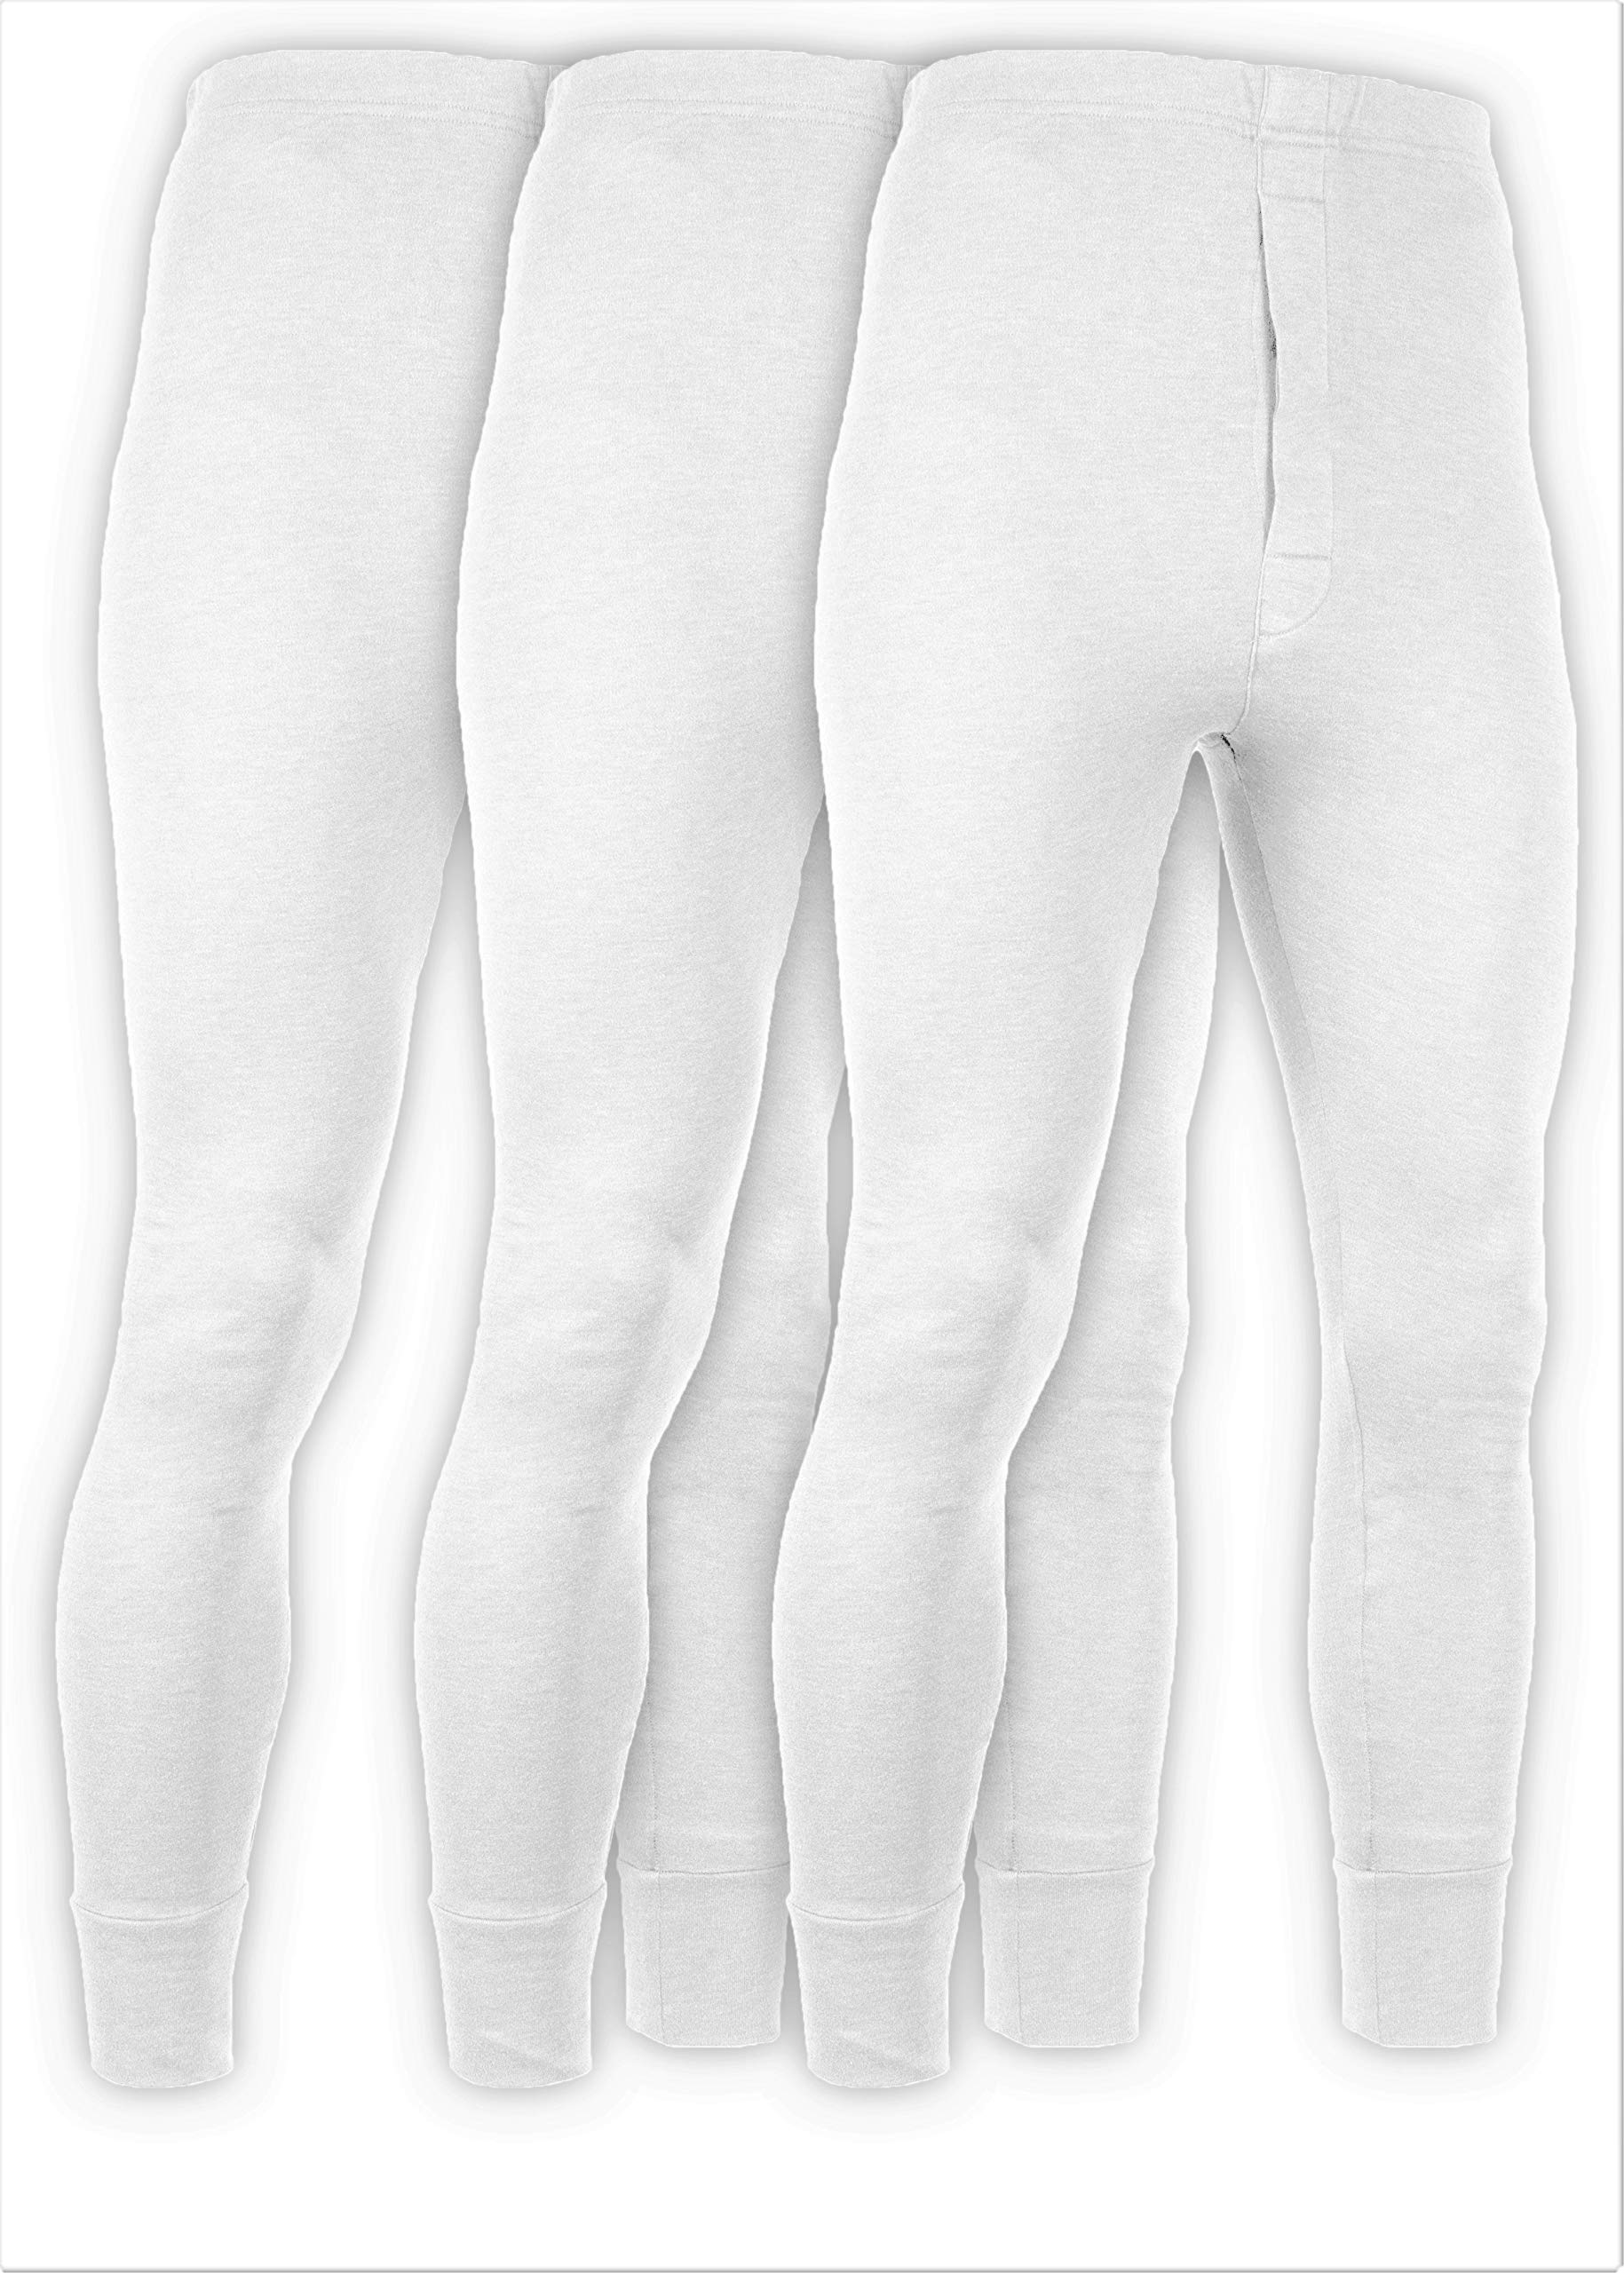 Andrew Scott Men's 3 Pack Premium Cotton Base Layer Long Thermal Underwear Pants (3 Pack -White, Large) by Andrew Scott